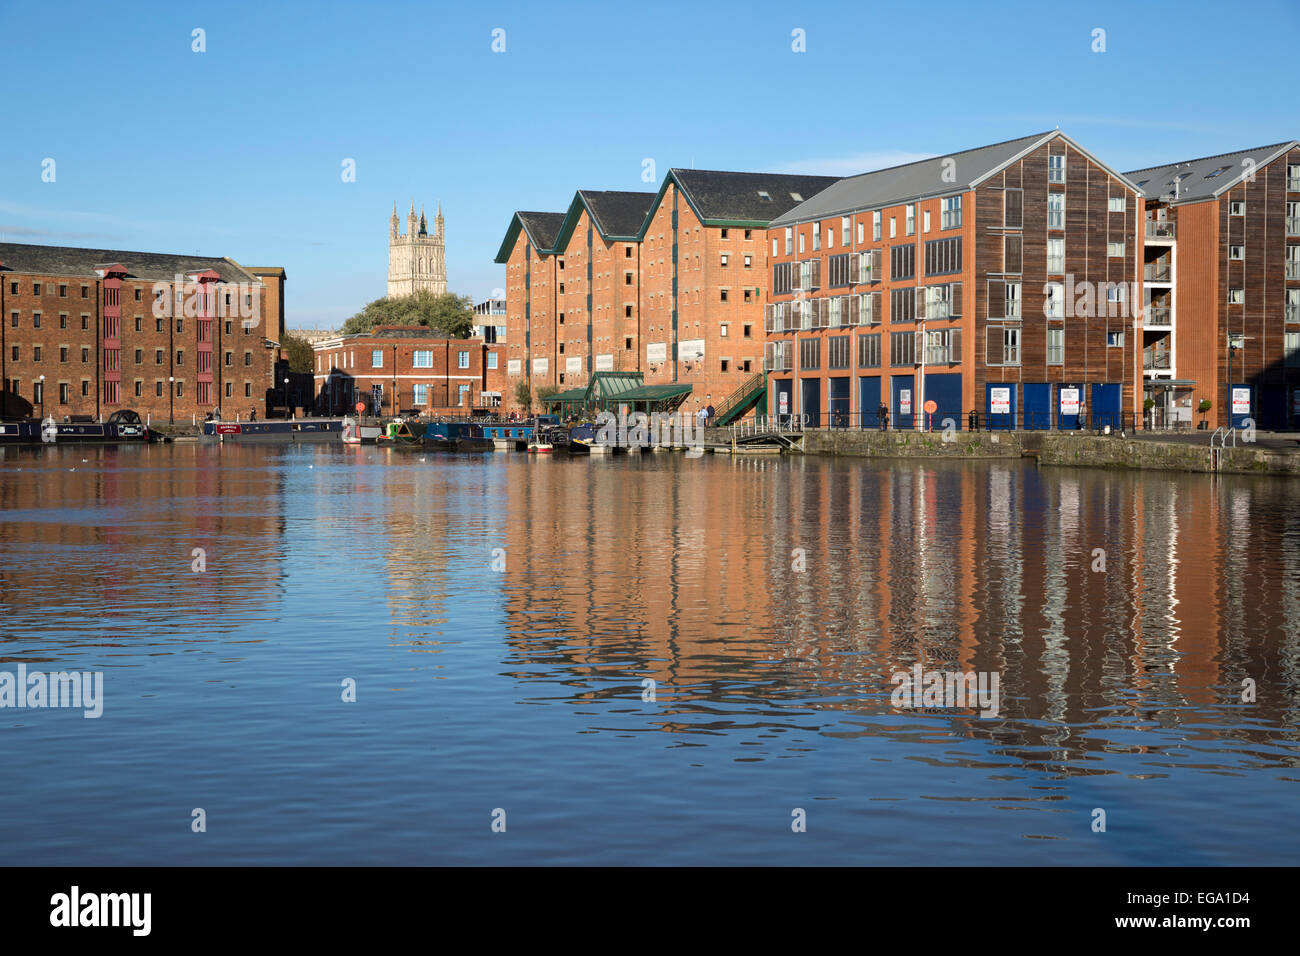 Former warehouses and Gloucester Cathedral, Gloucester Quays, Gloucester, Gloucestershire, England, United Kingdom, - Stock Image